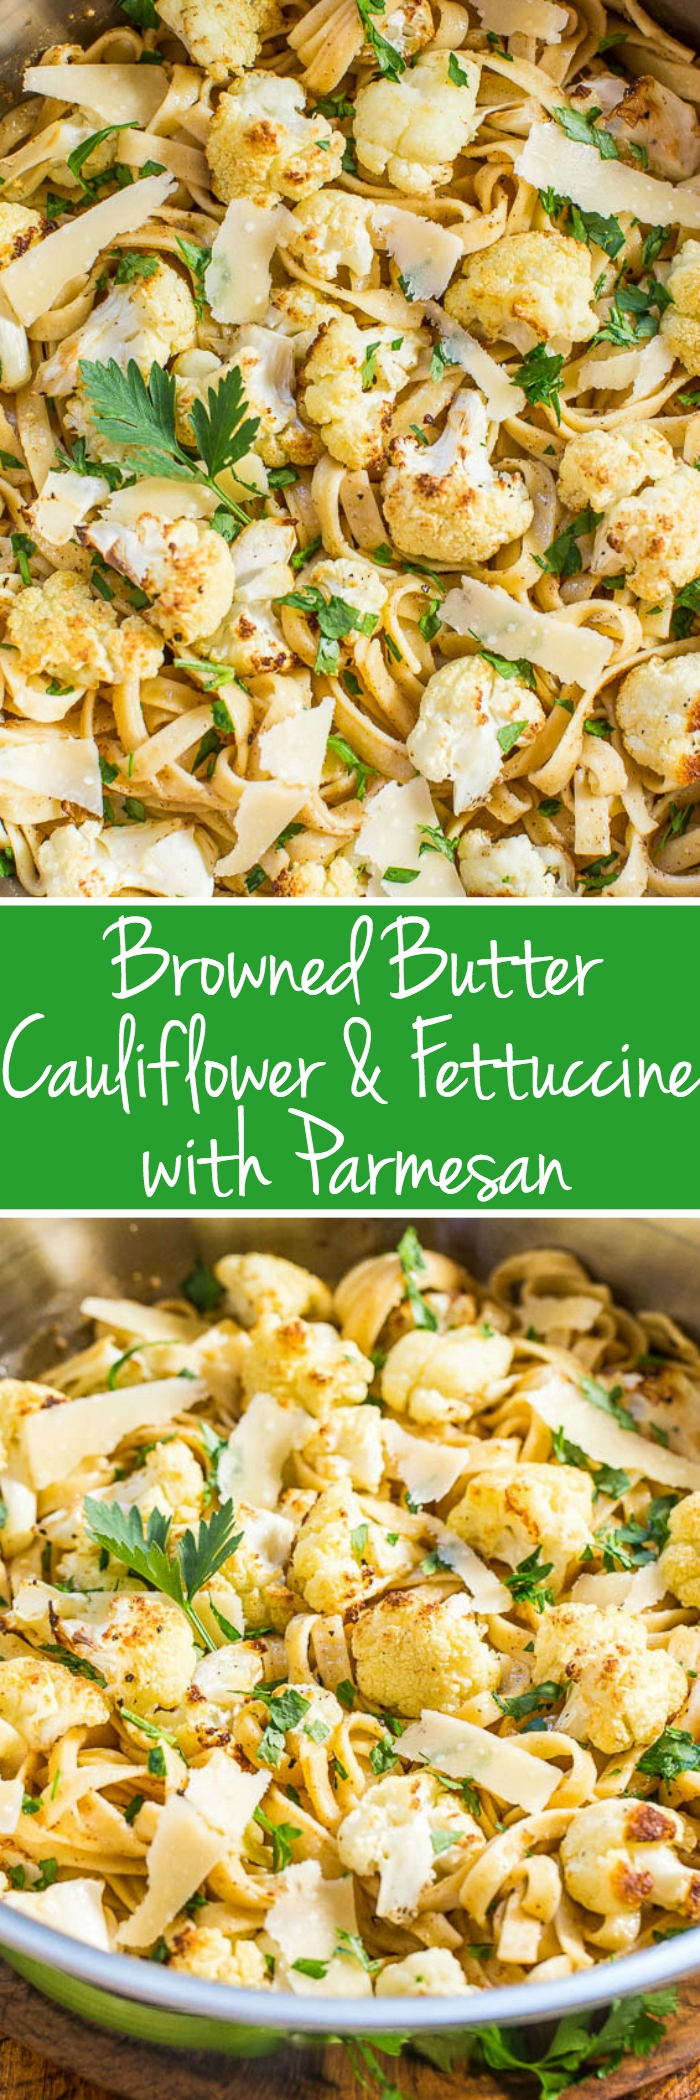 Golden Butter Cauliflower and Parmesan Fettuccine - Roasted Cauliflower is great with butter and cheese noodles! The golden butter makes everything taste absolutely AMAZING! Easy and ready in 30 minutes!